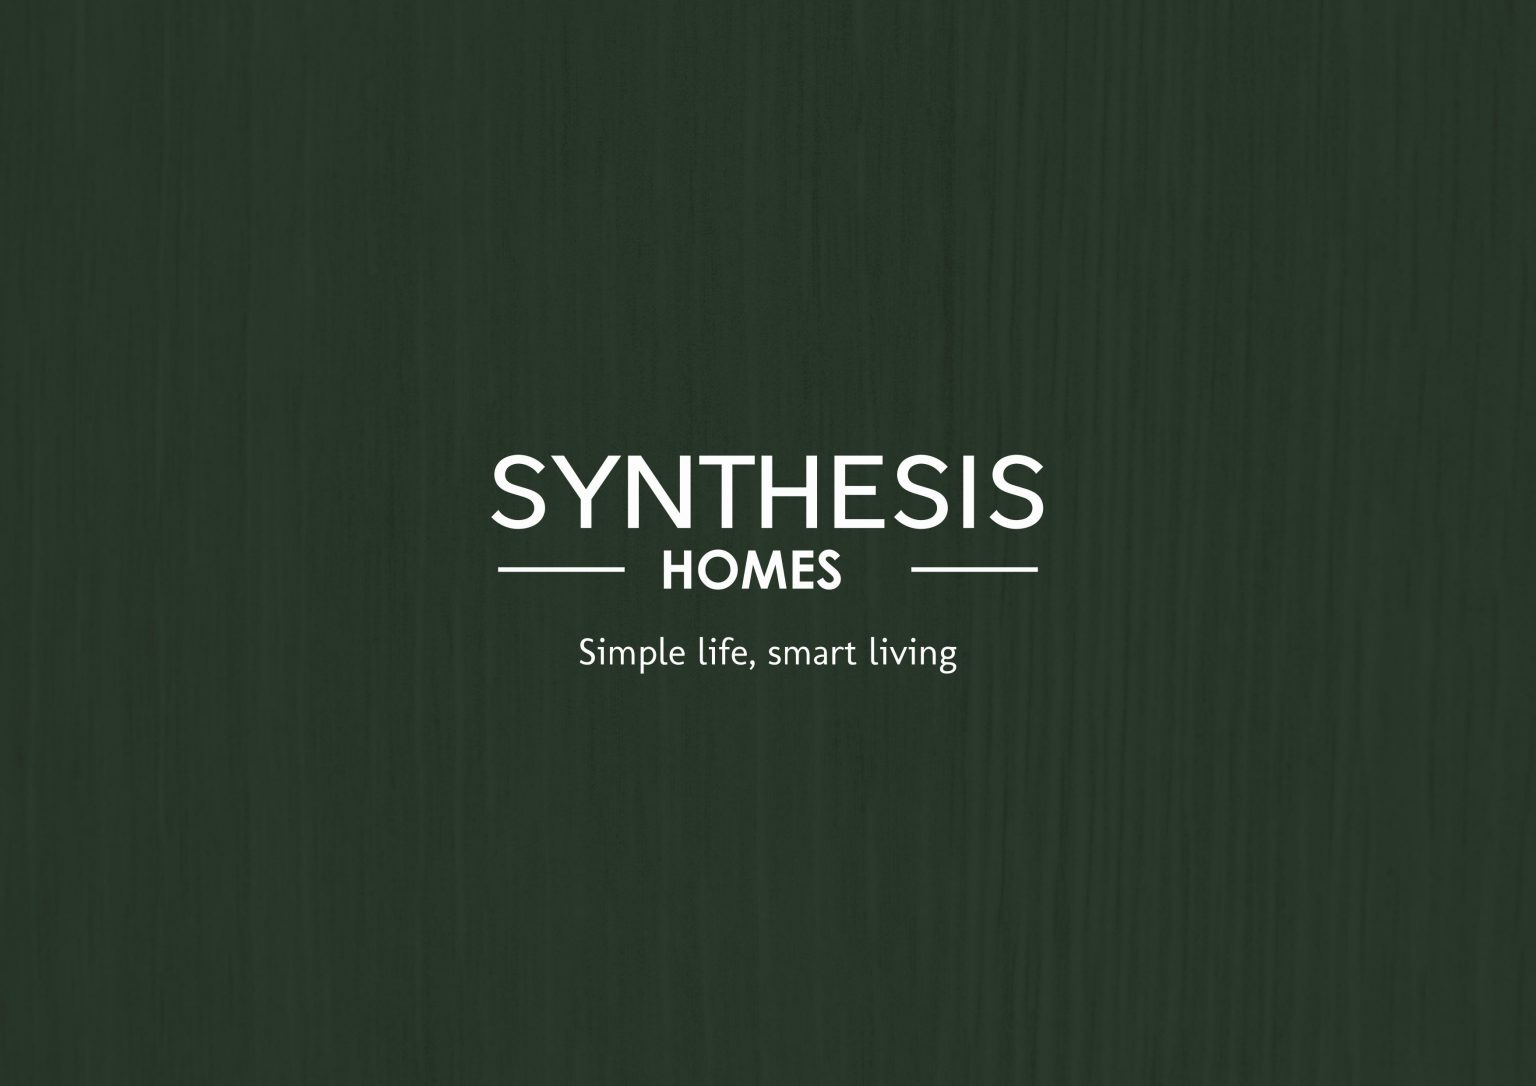 https://synthesishomes.cluster-rumah.com